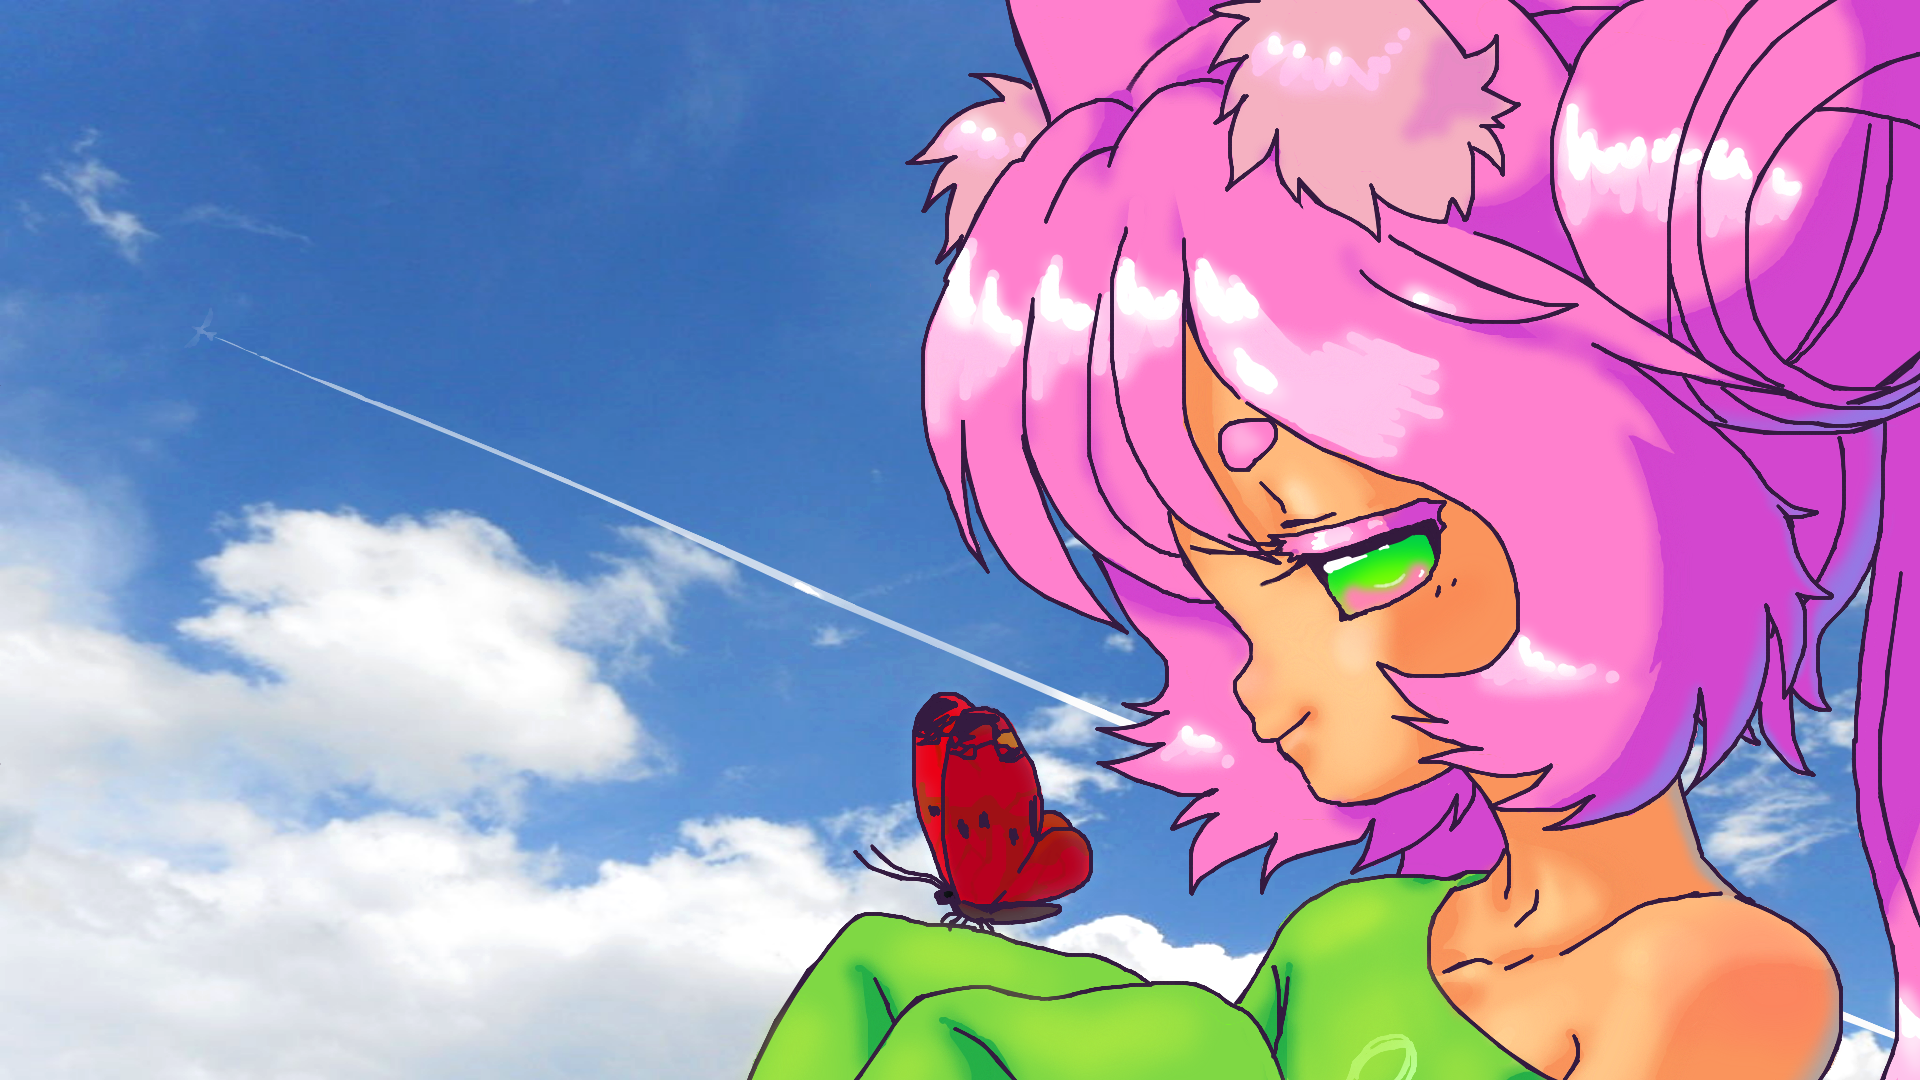 Butterfly in the Sky by Rakugaki-otoko